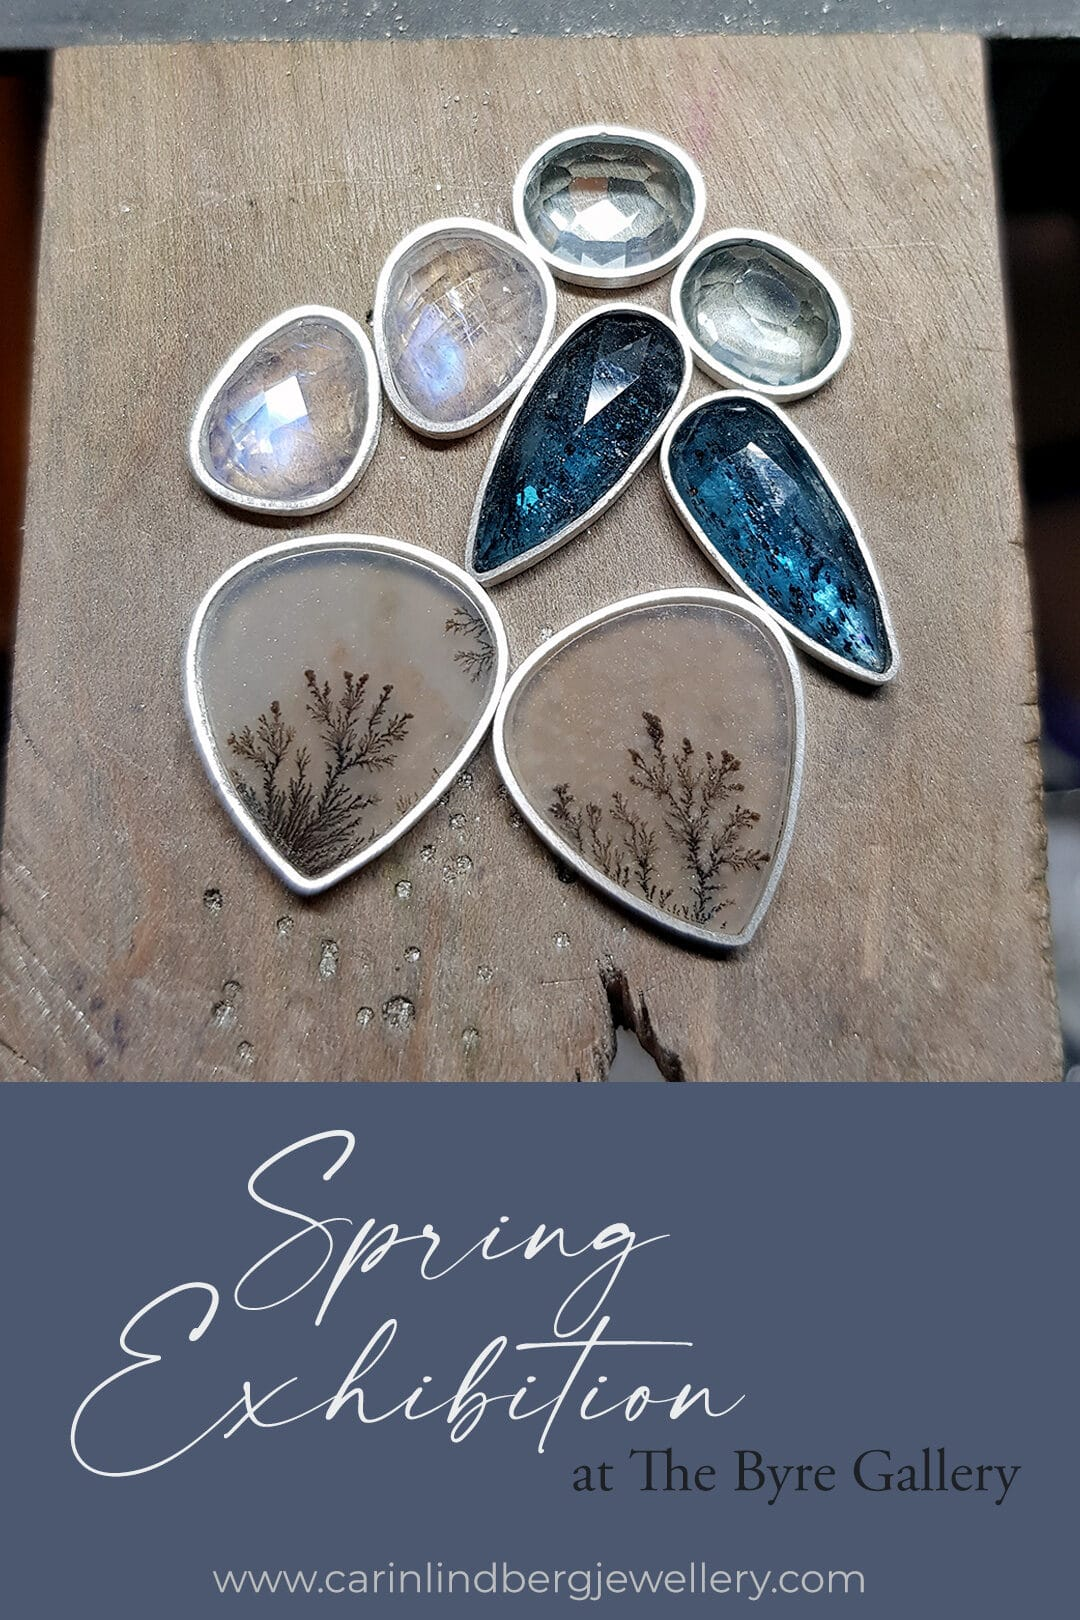 Preparing for the spring exhibition at The Byre Gallery